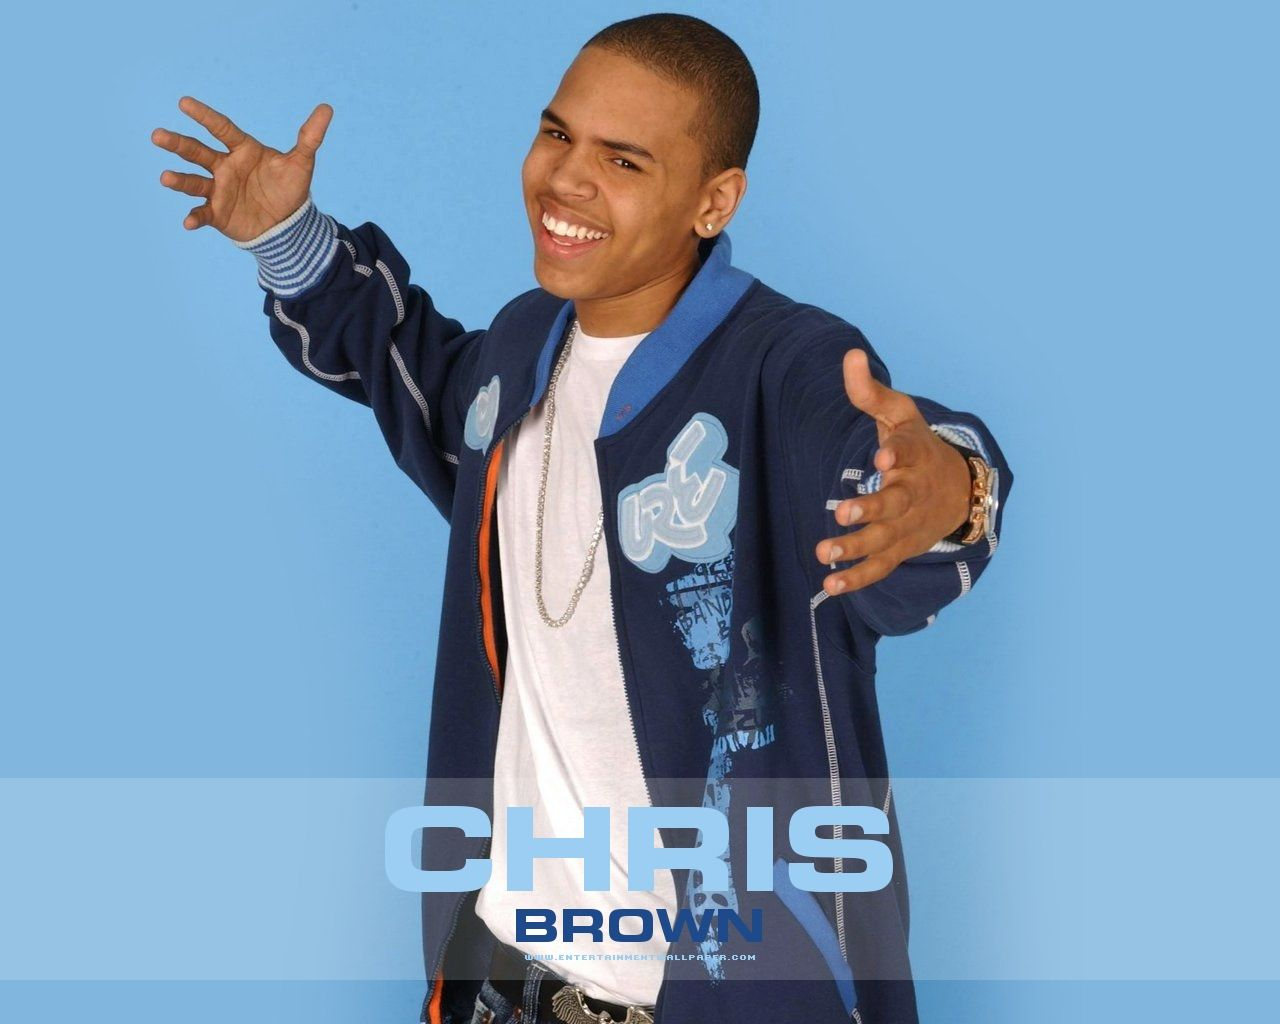 Download Iphones S Wallpapers For Free 1920 1080 Chris Brown Wallpaper 48 Wallpapers Adorable Wallpapers Chris Brown Chris Brown Wallpaper Brown Wallpaper